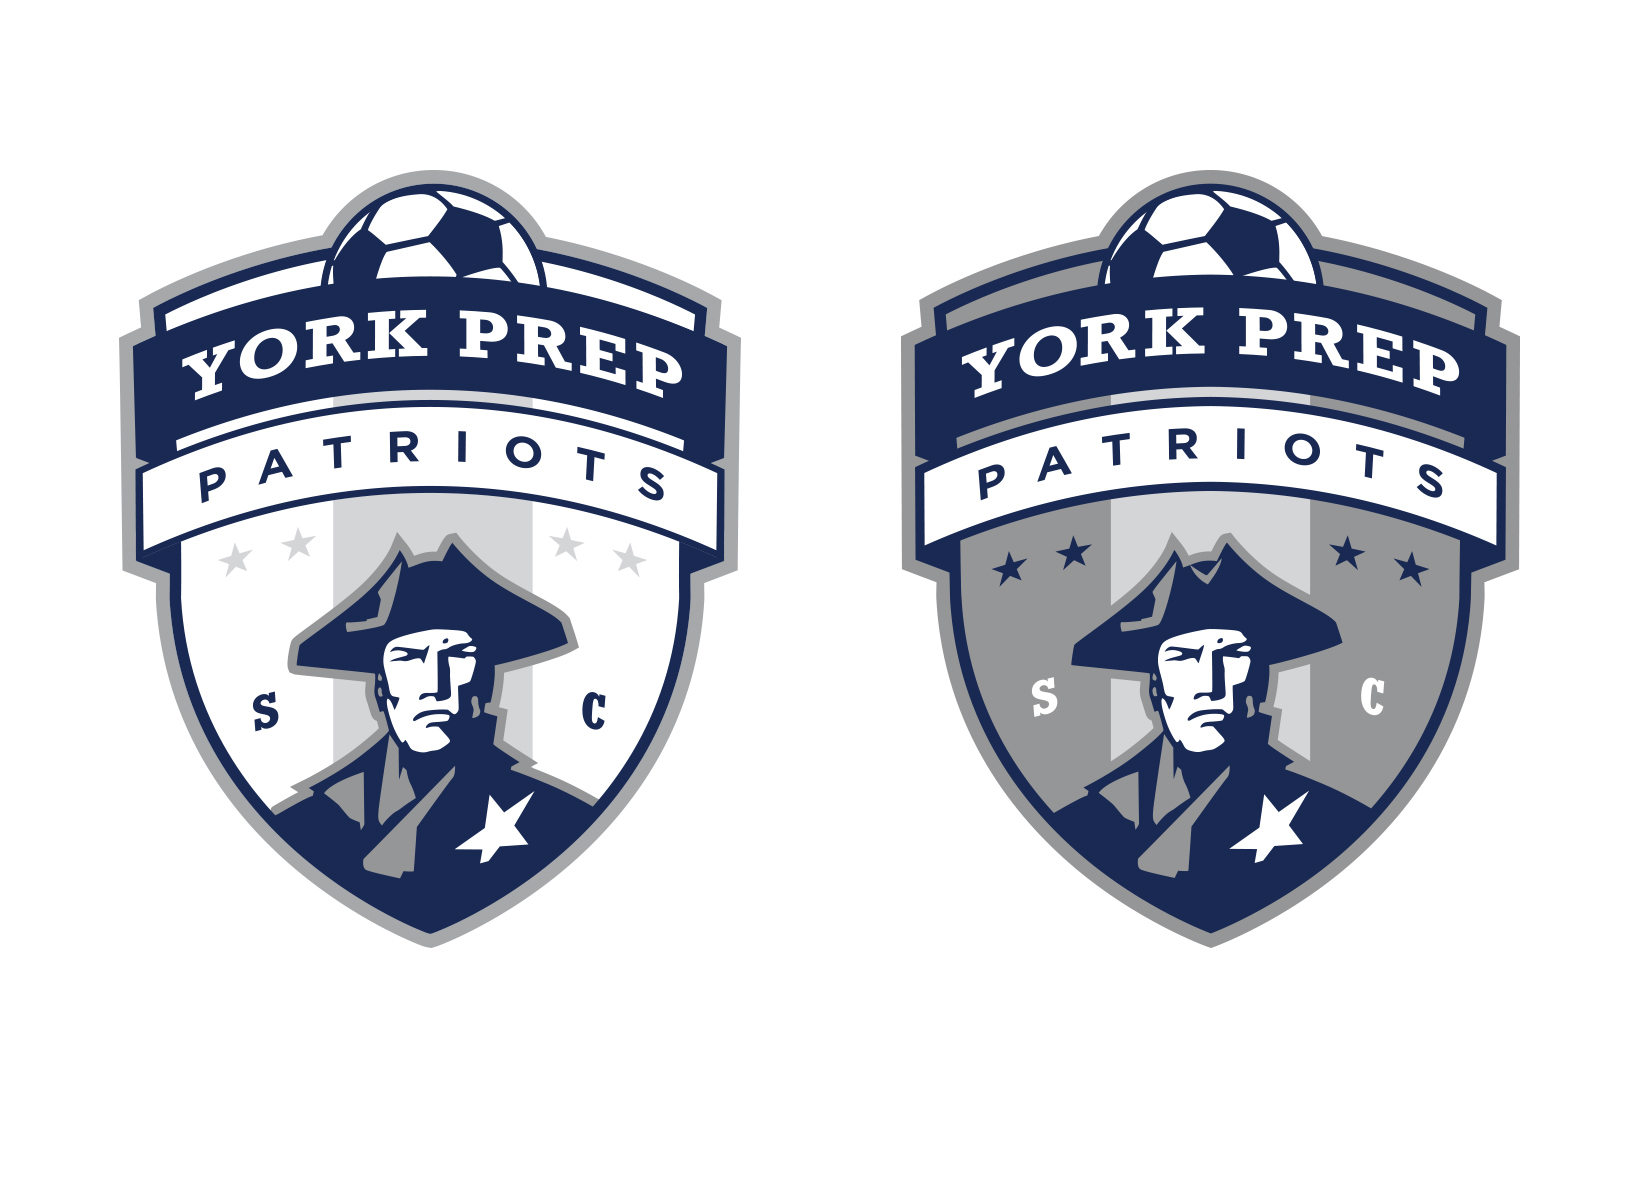 york-prep-patriots-sc-crest-options-1.jpg